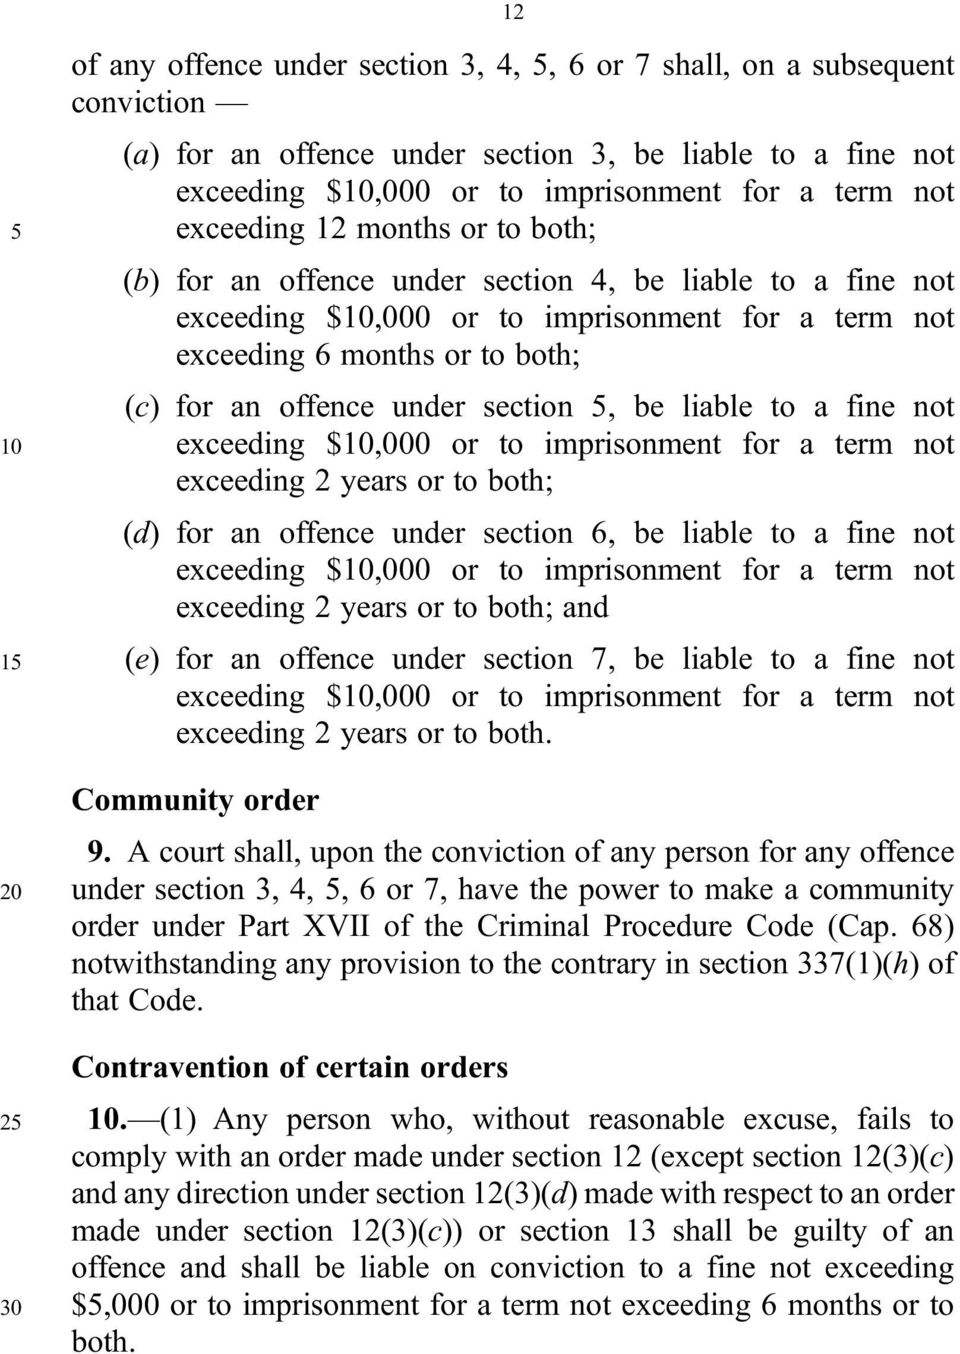 section 5, be liable to a fine not 10 exceeding $10,000 or to imprisonment for a term not exceeding 2 years or to both; (d) for an offence under section 6, be liable to a fine not exceeding $10,000